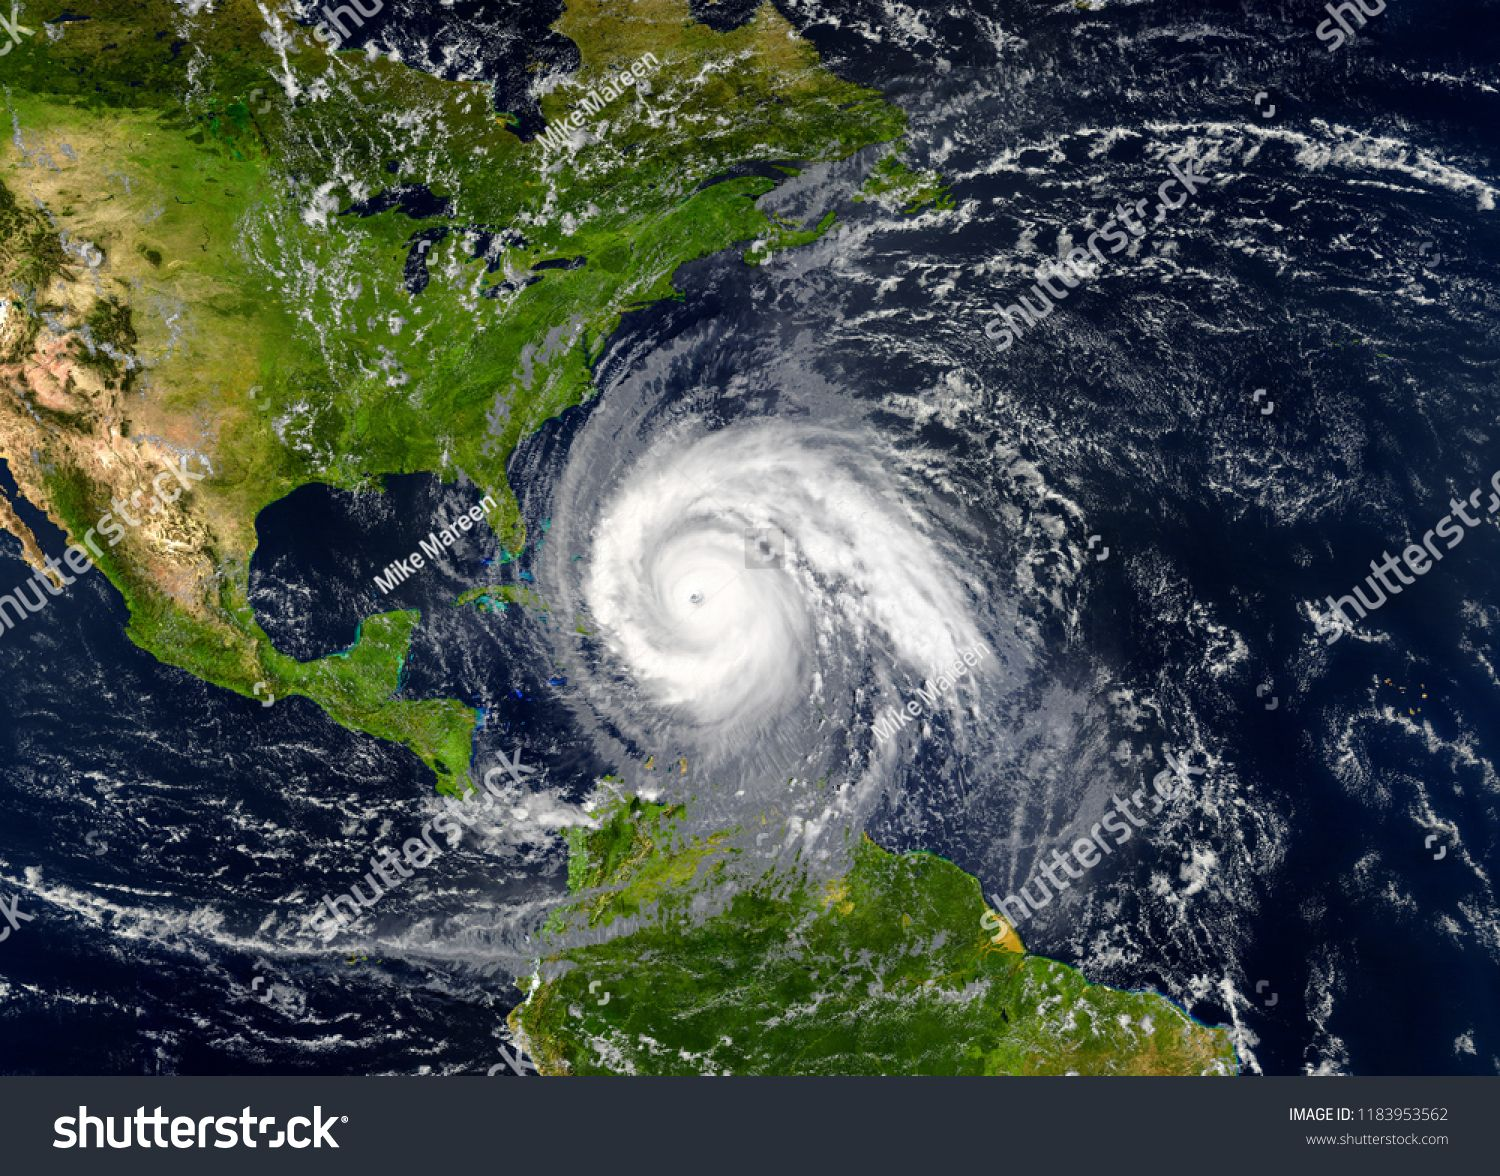 Tropical Hurricane Approaching The Usa Elements Of This Image Are Furnished By Nasa Approaching Usa Tropical Hu Global Warming Hurricane What Causes Hurricanes